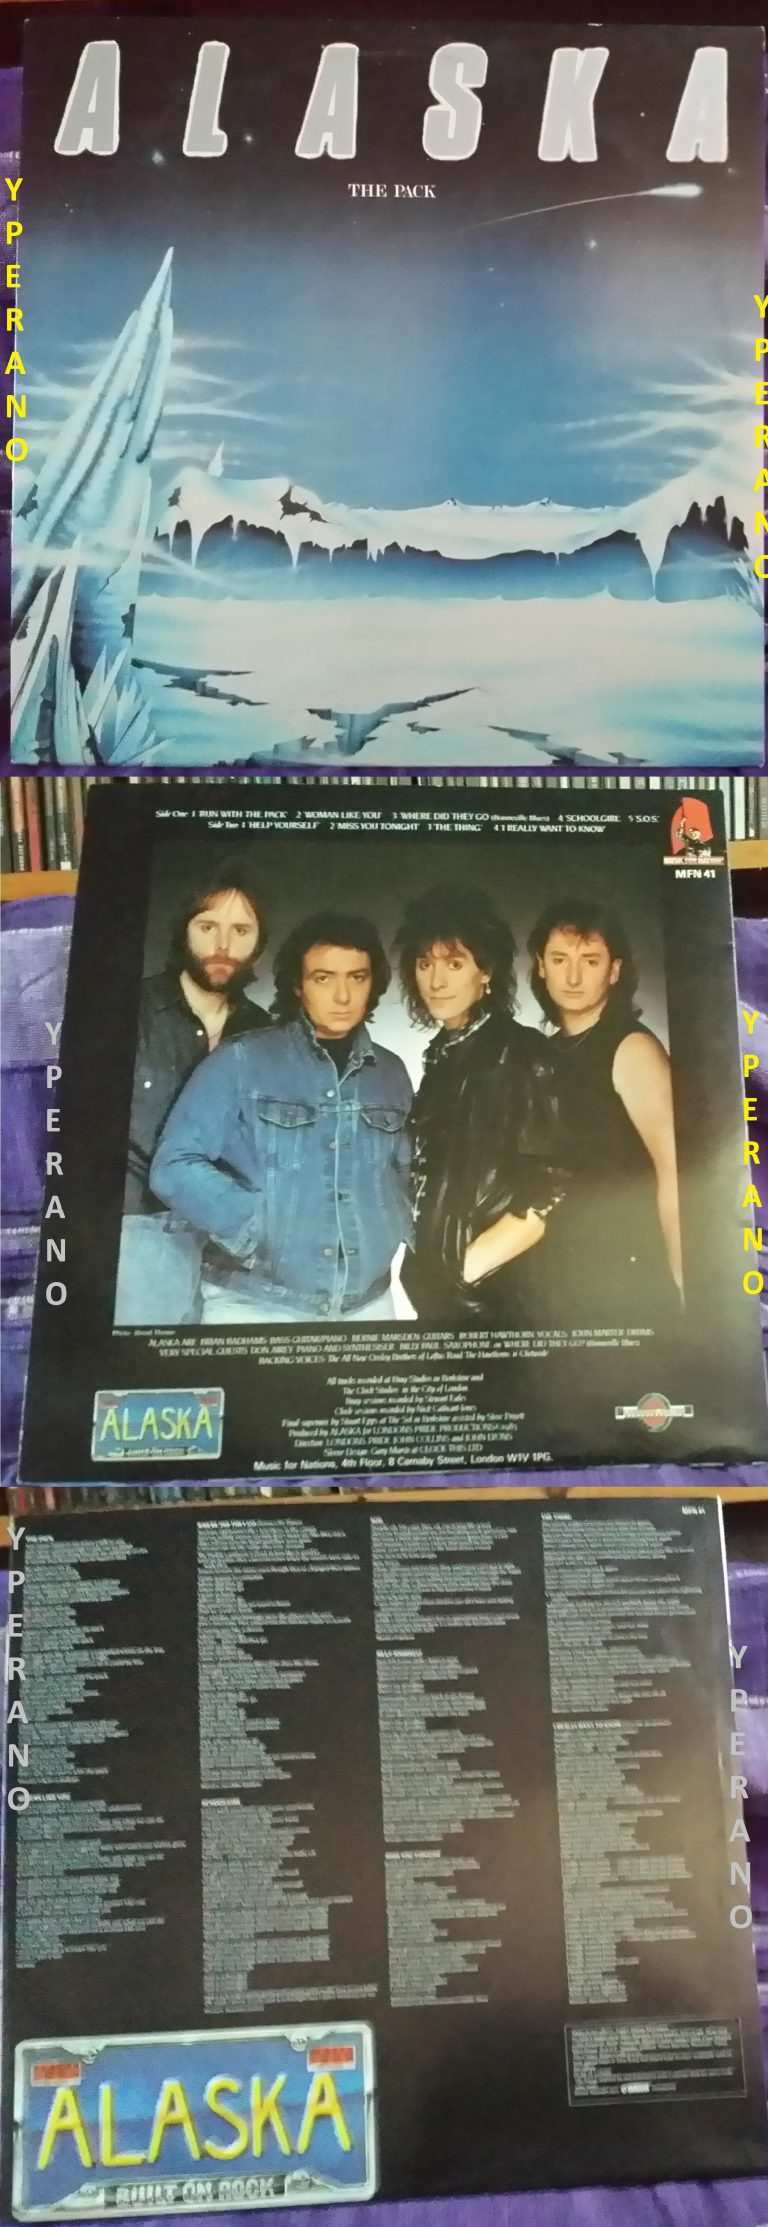 ALASKA: The Pack LP Great album by the ex -Whitesnake guitarist. Check AUDIO samples